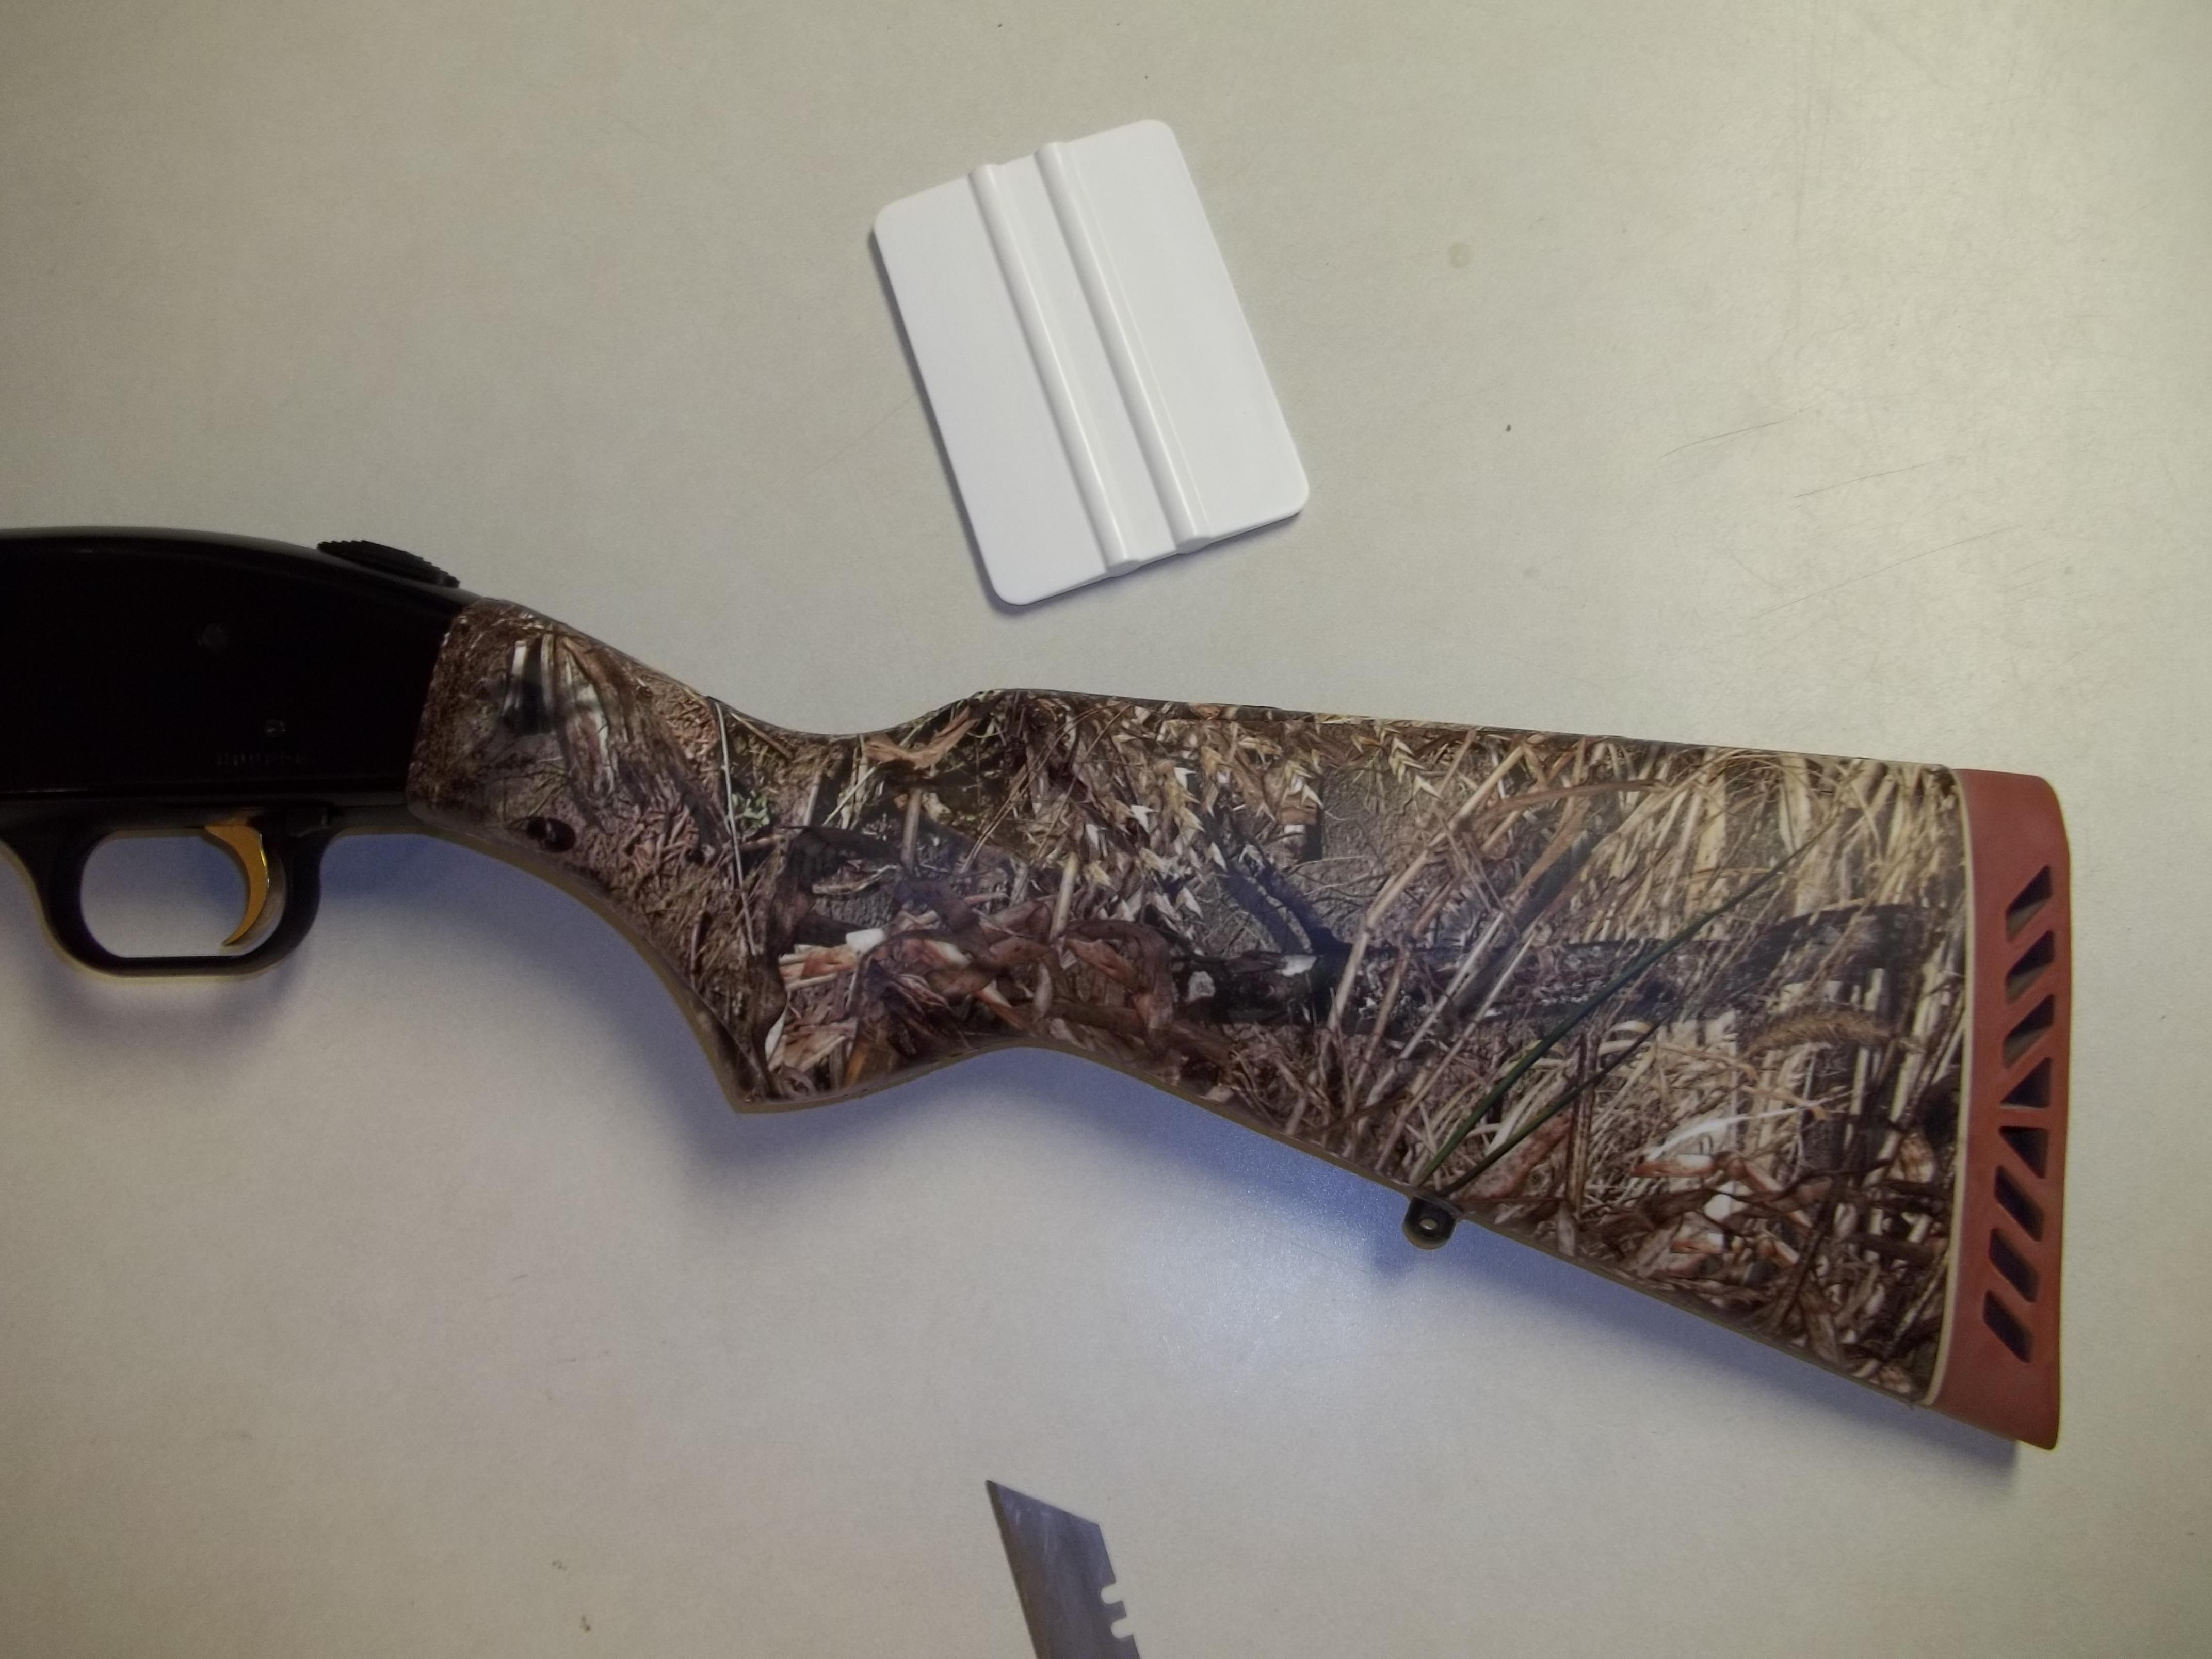 Diy camo dip kit page 4 name 011g views 2279 size 8175 kb solutioingenieria Image collections